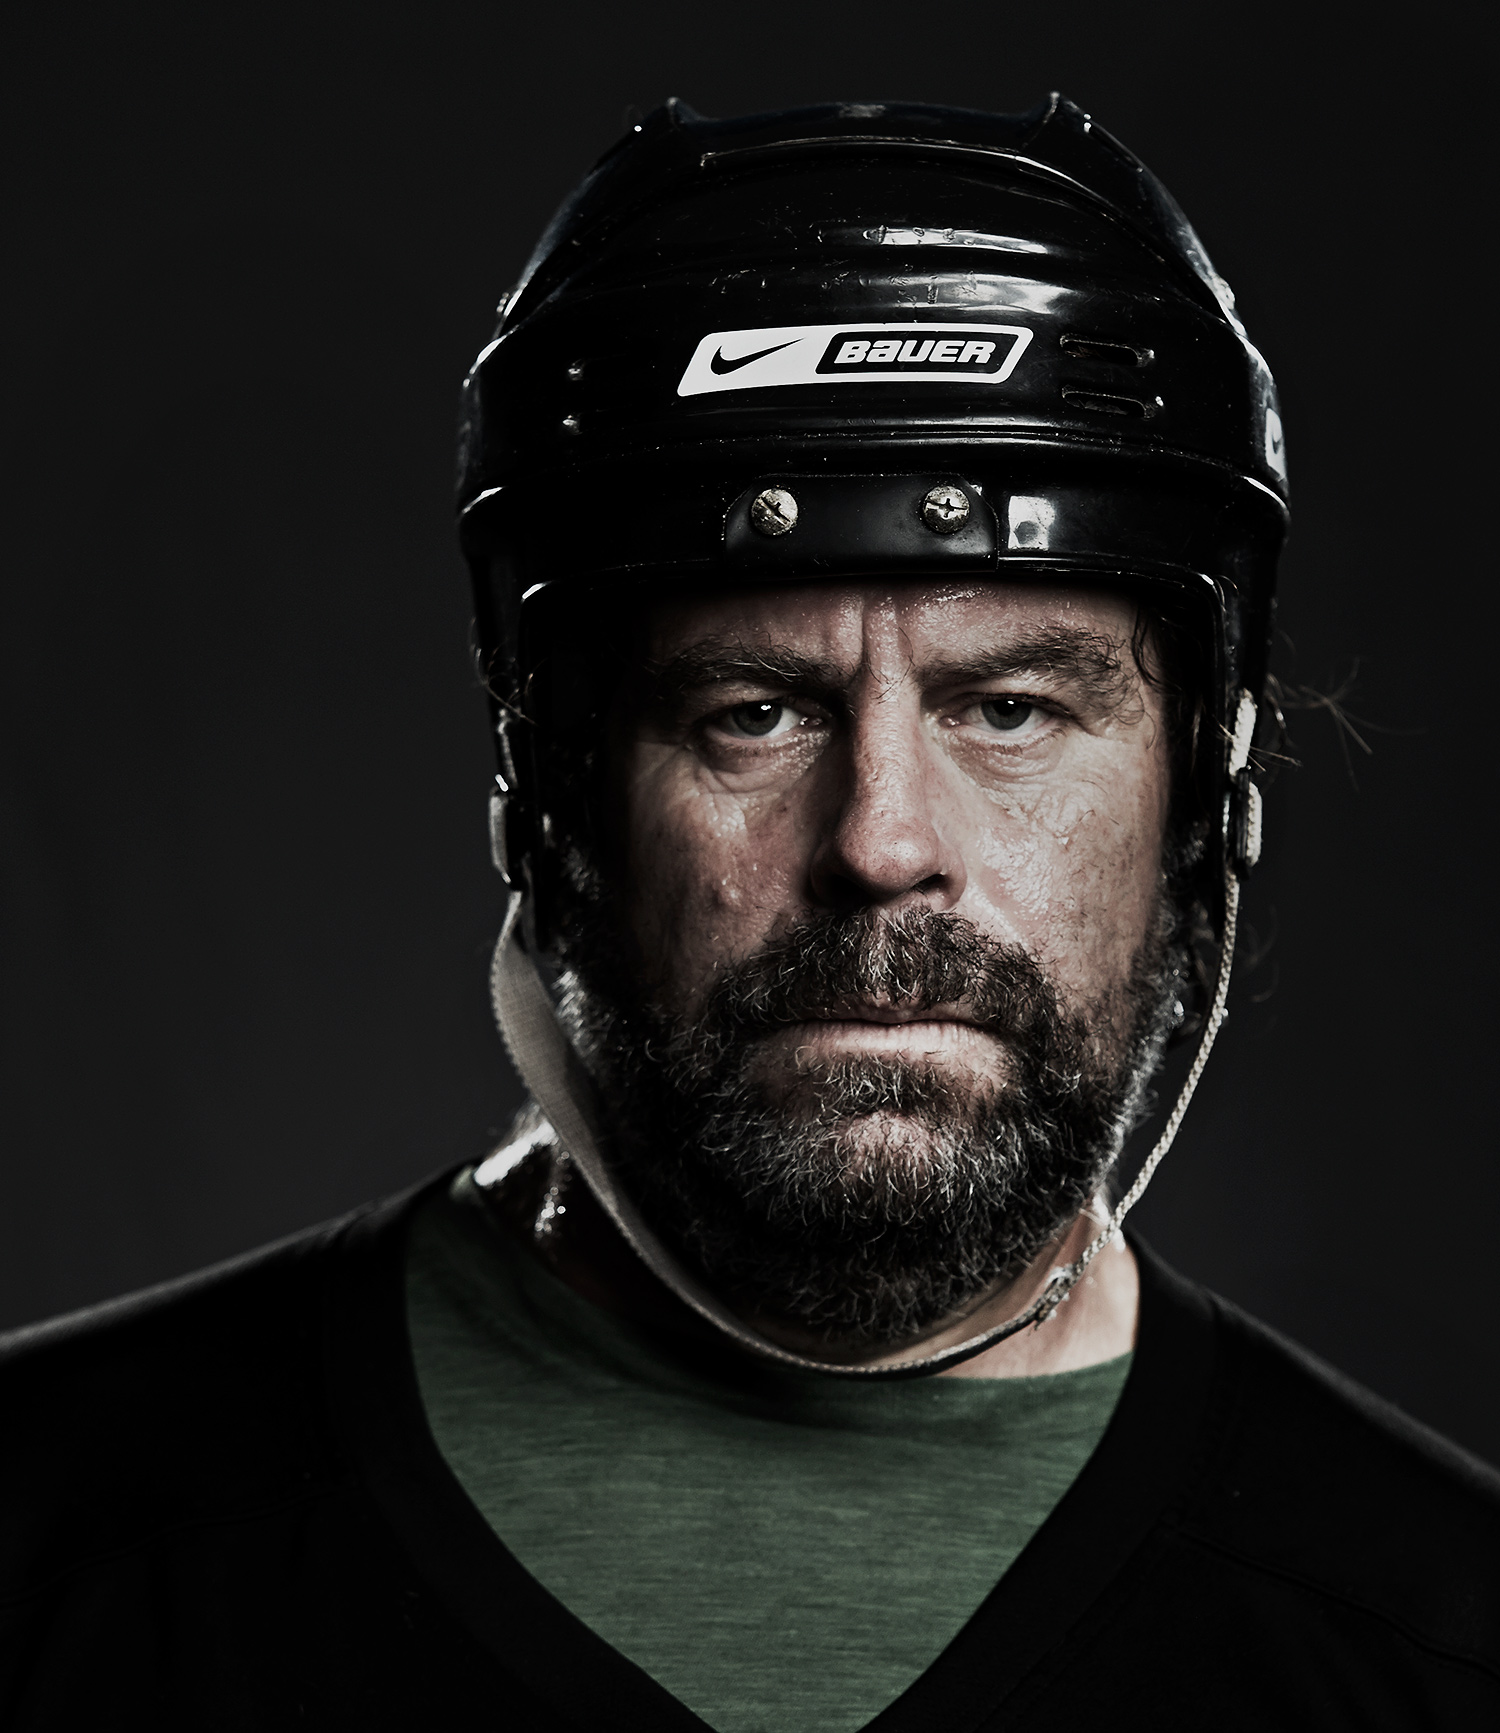 Hockey-Portrait.jpg